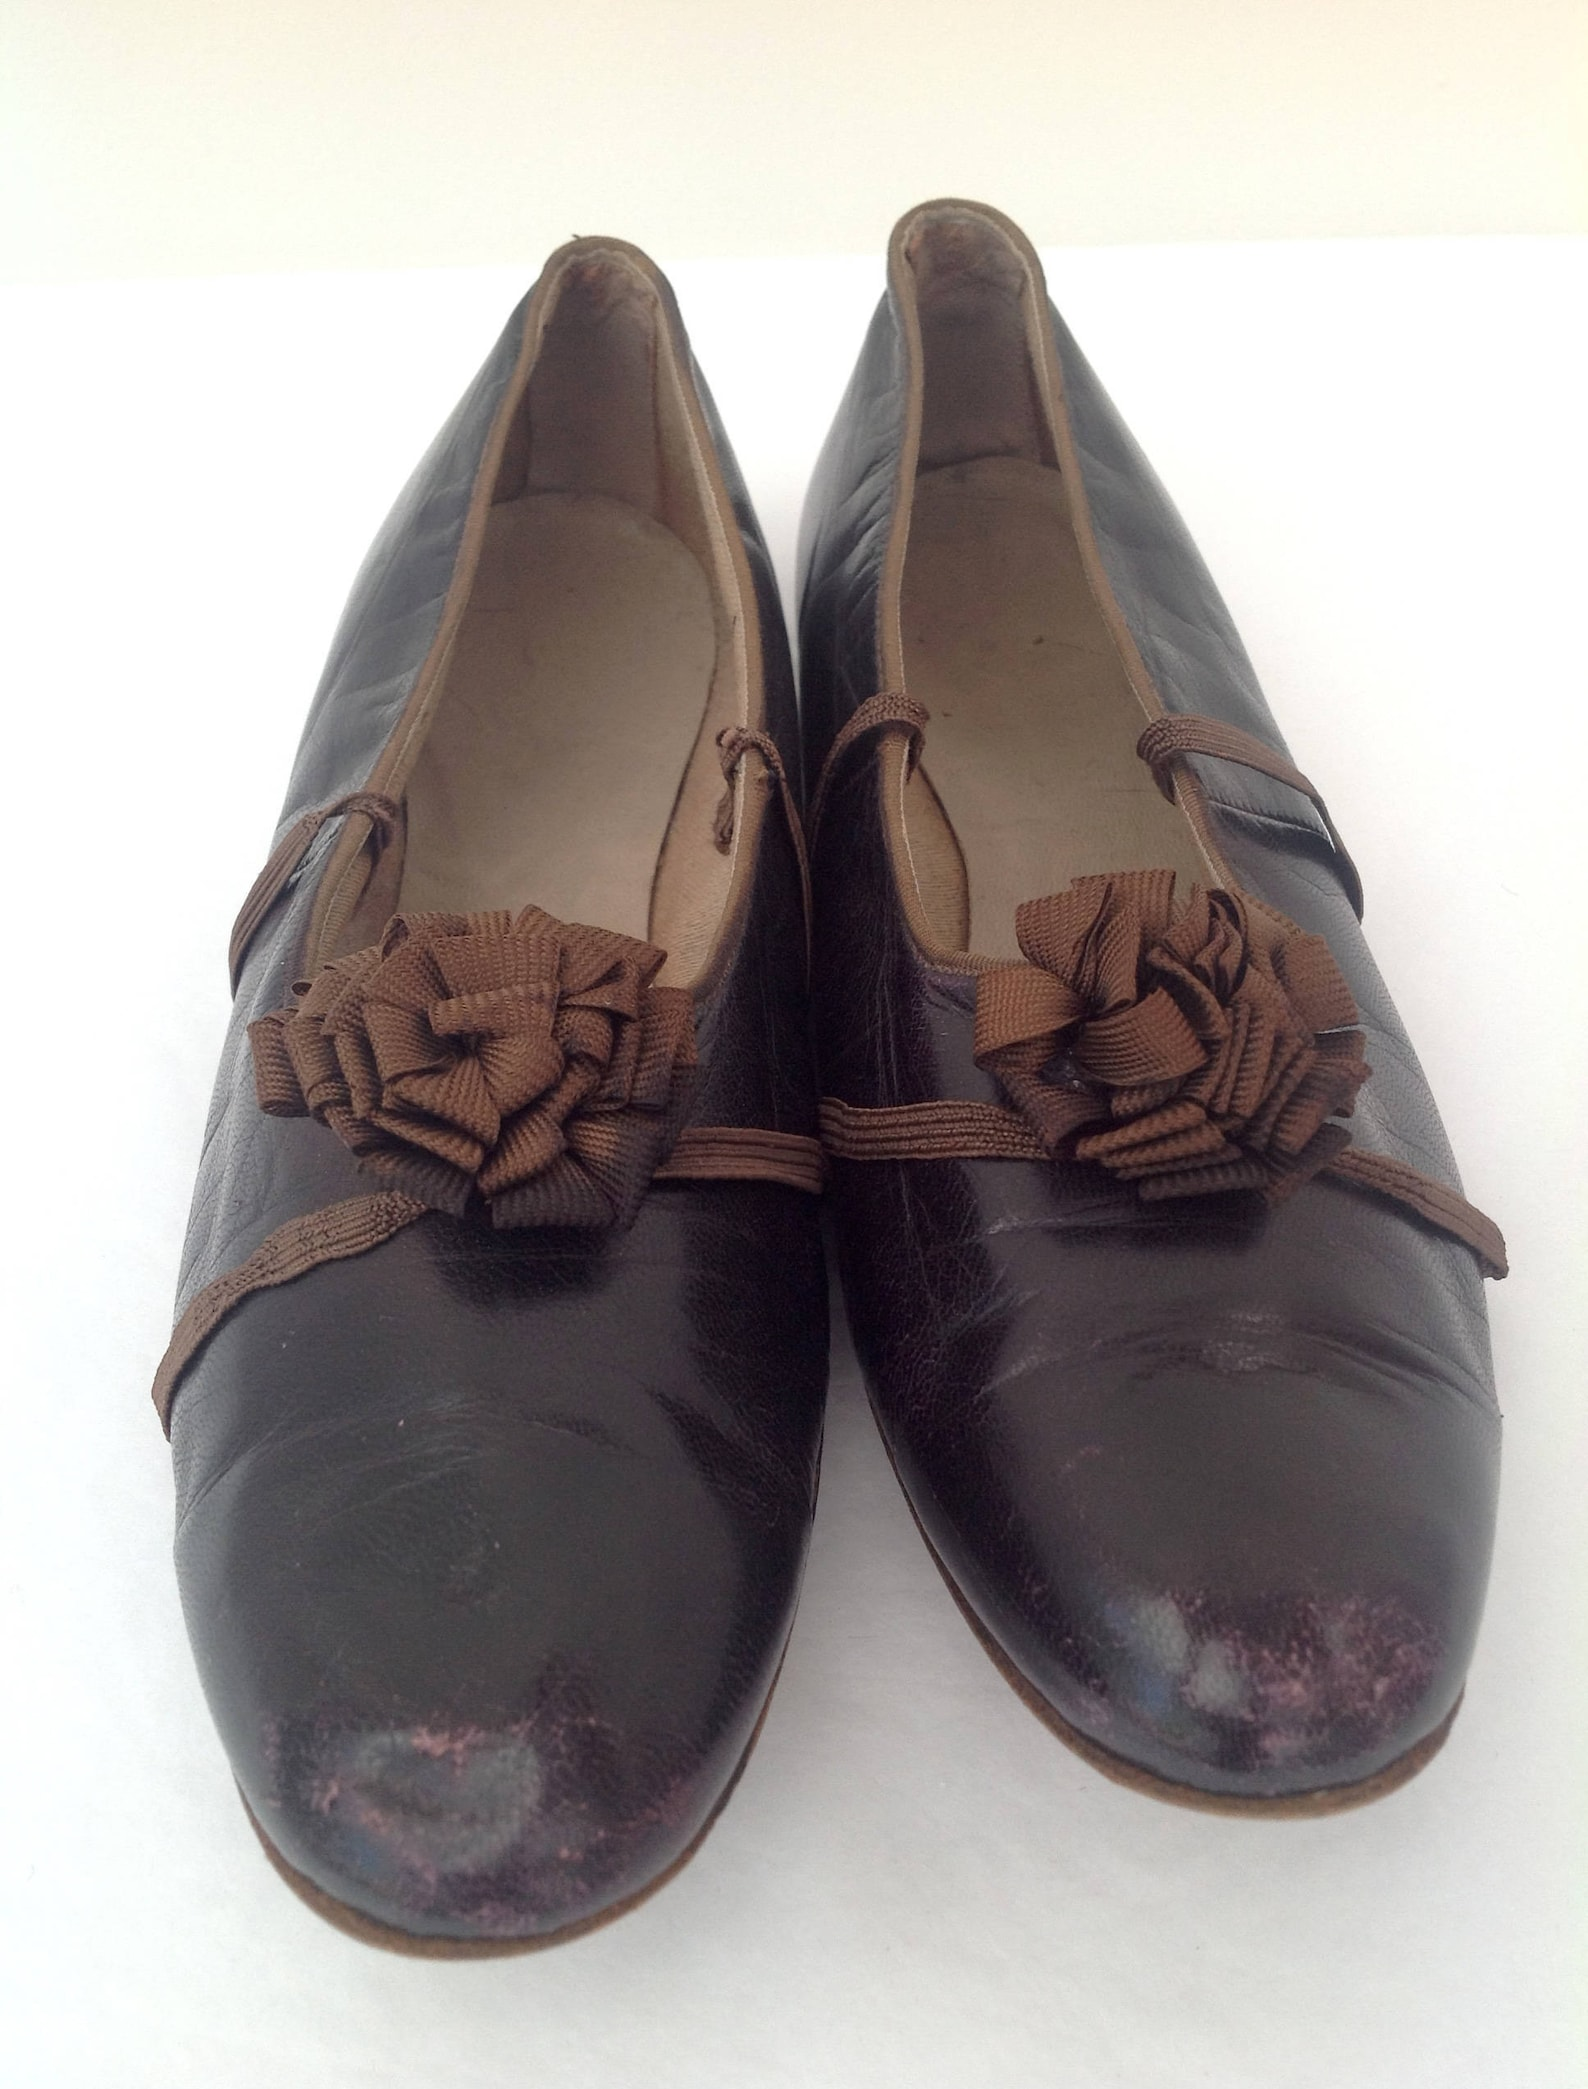 1920s shoes ballerina ballet style by clarks vintage antique